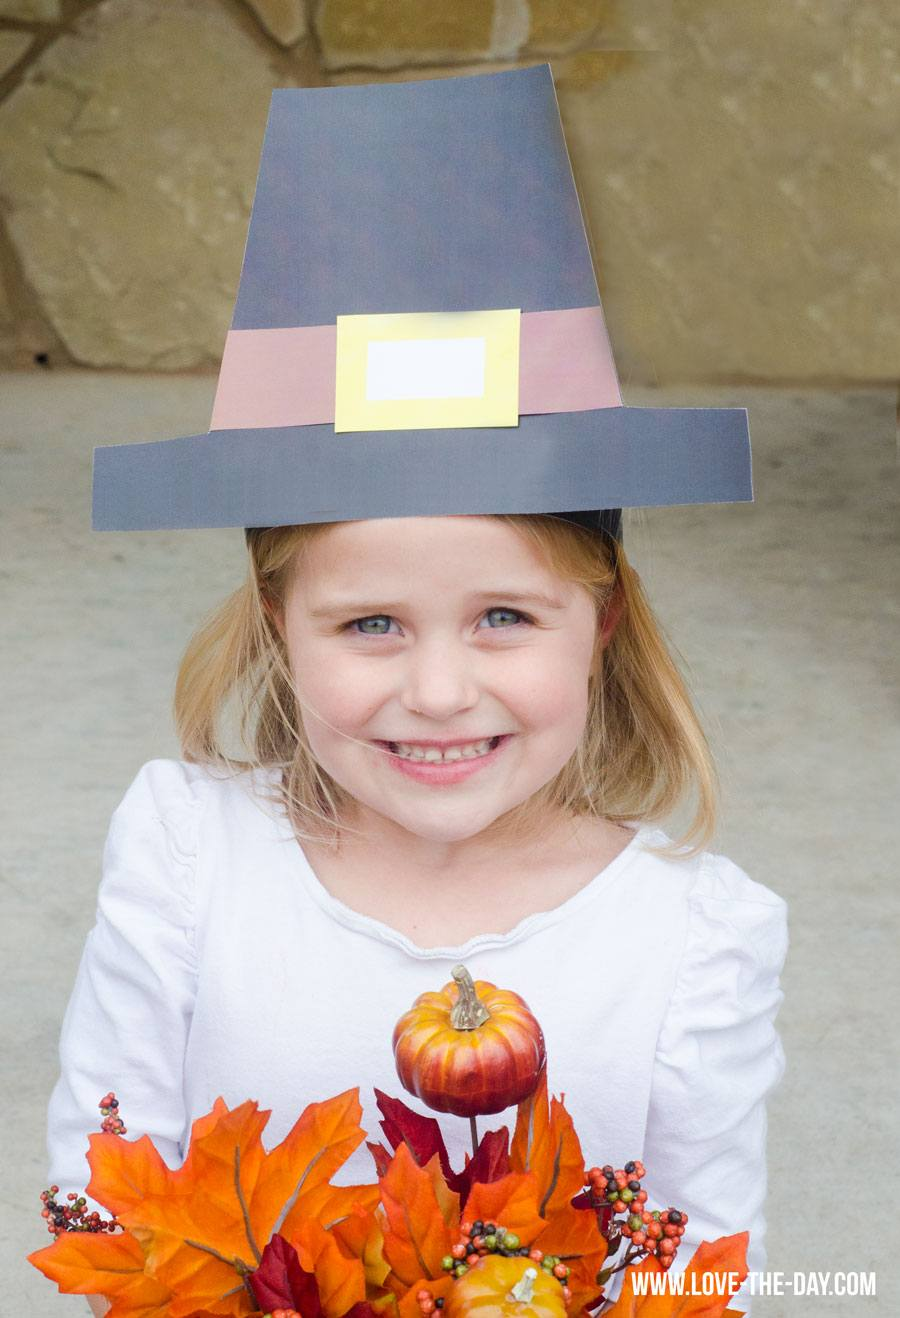 Pilgrim Crafts For Kids: Pilgram Hat & Tutorial by Love The Day